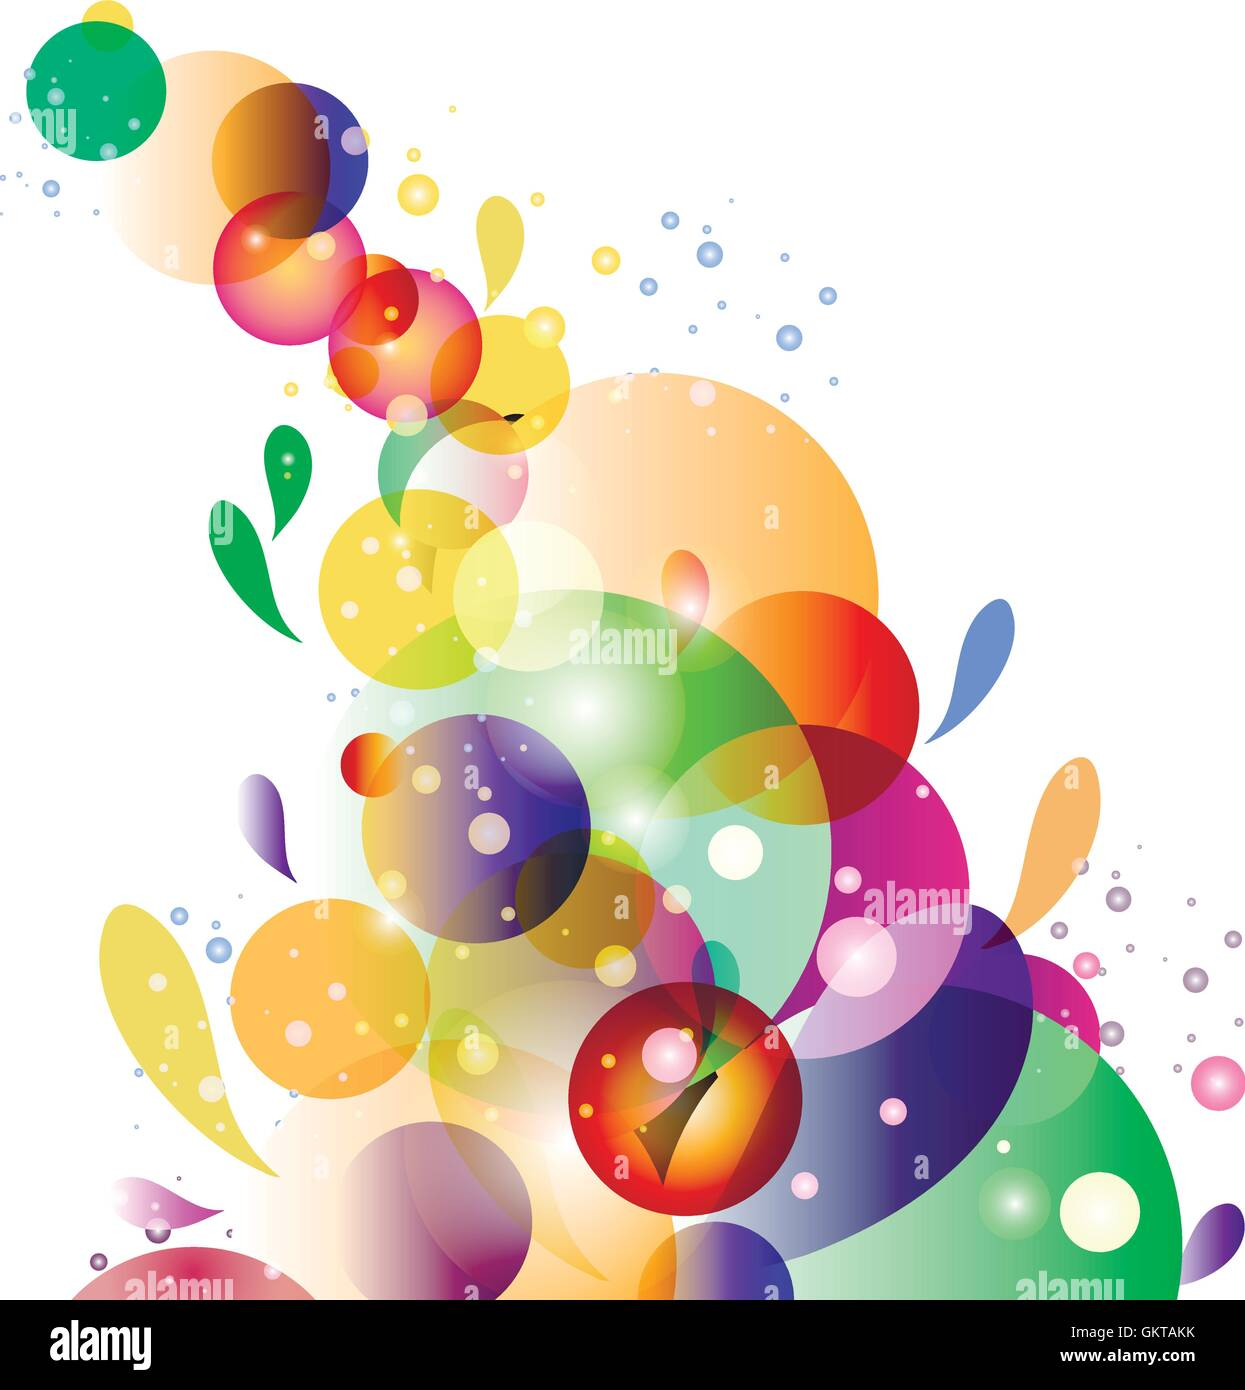 Bubbles with white background. - Stock Vector